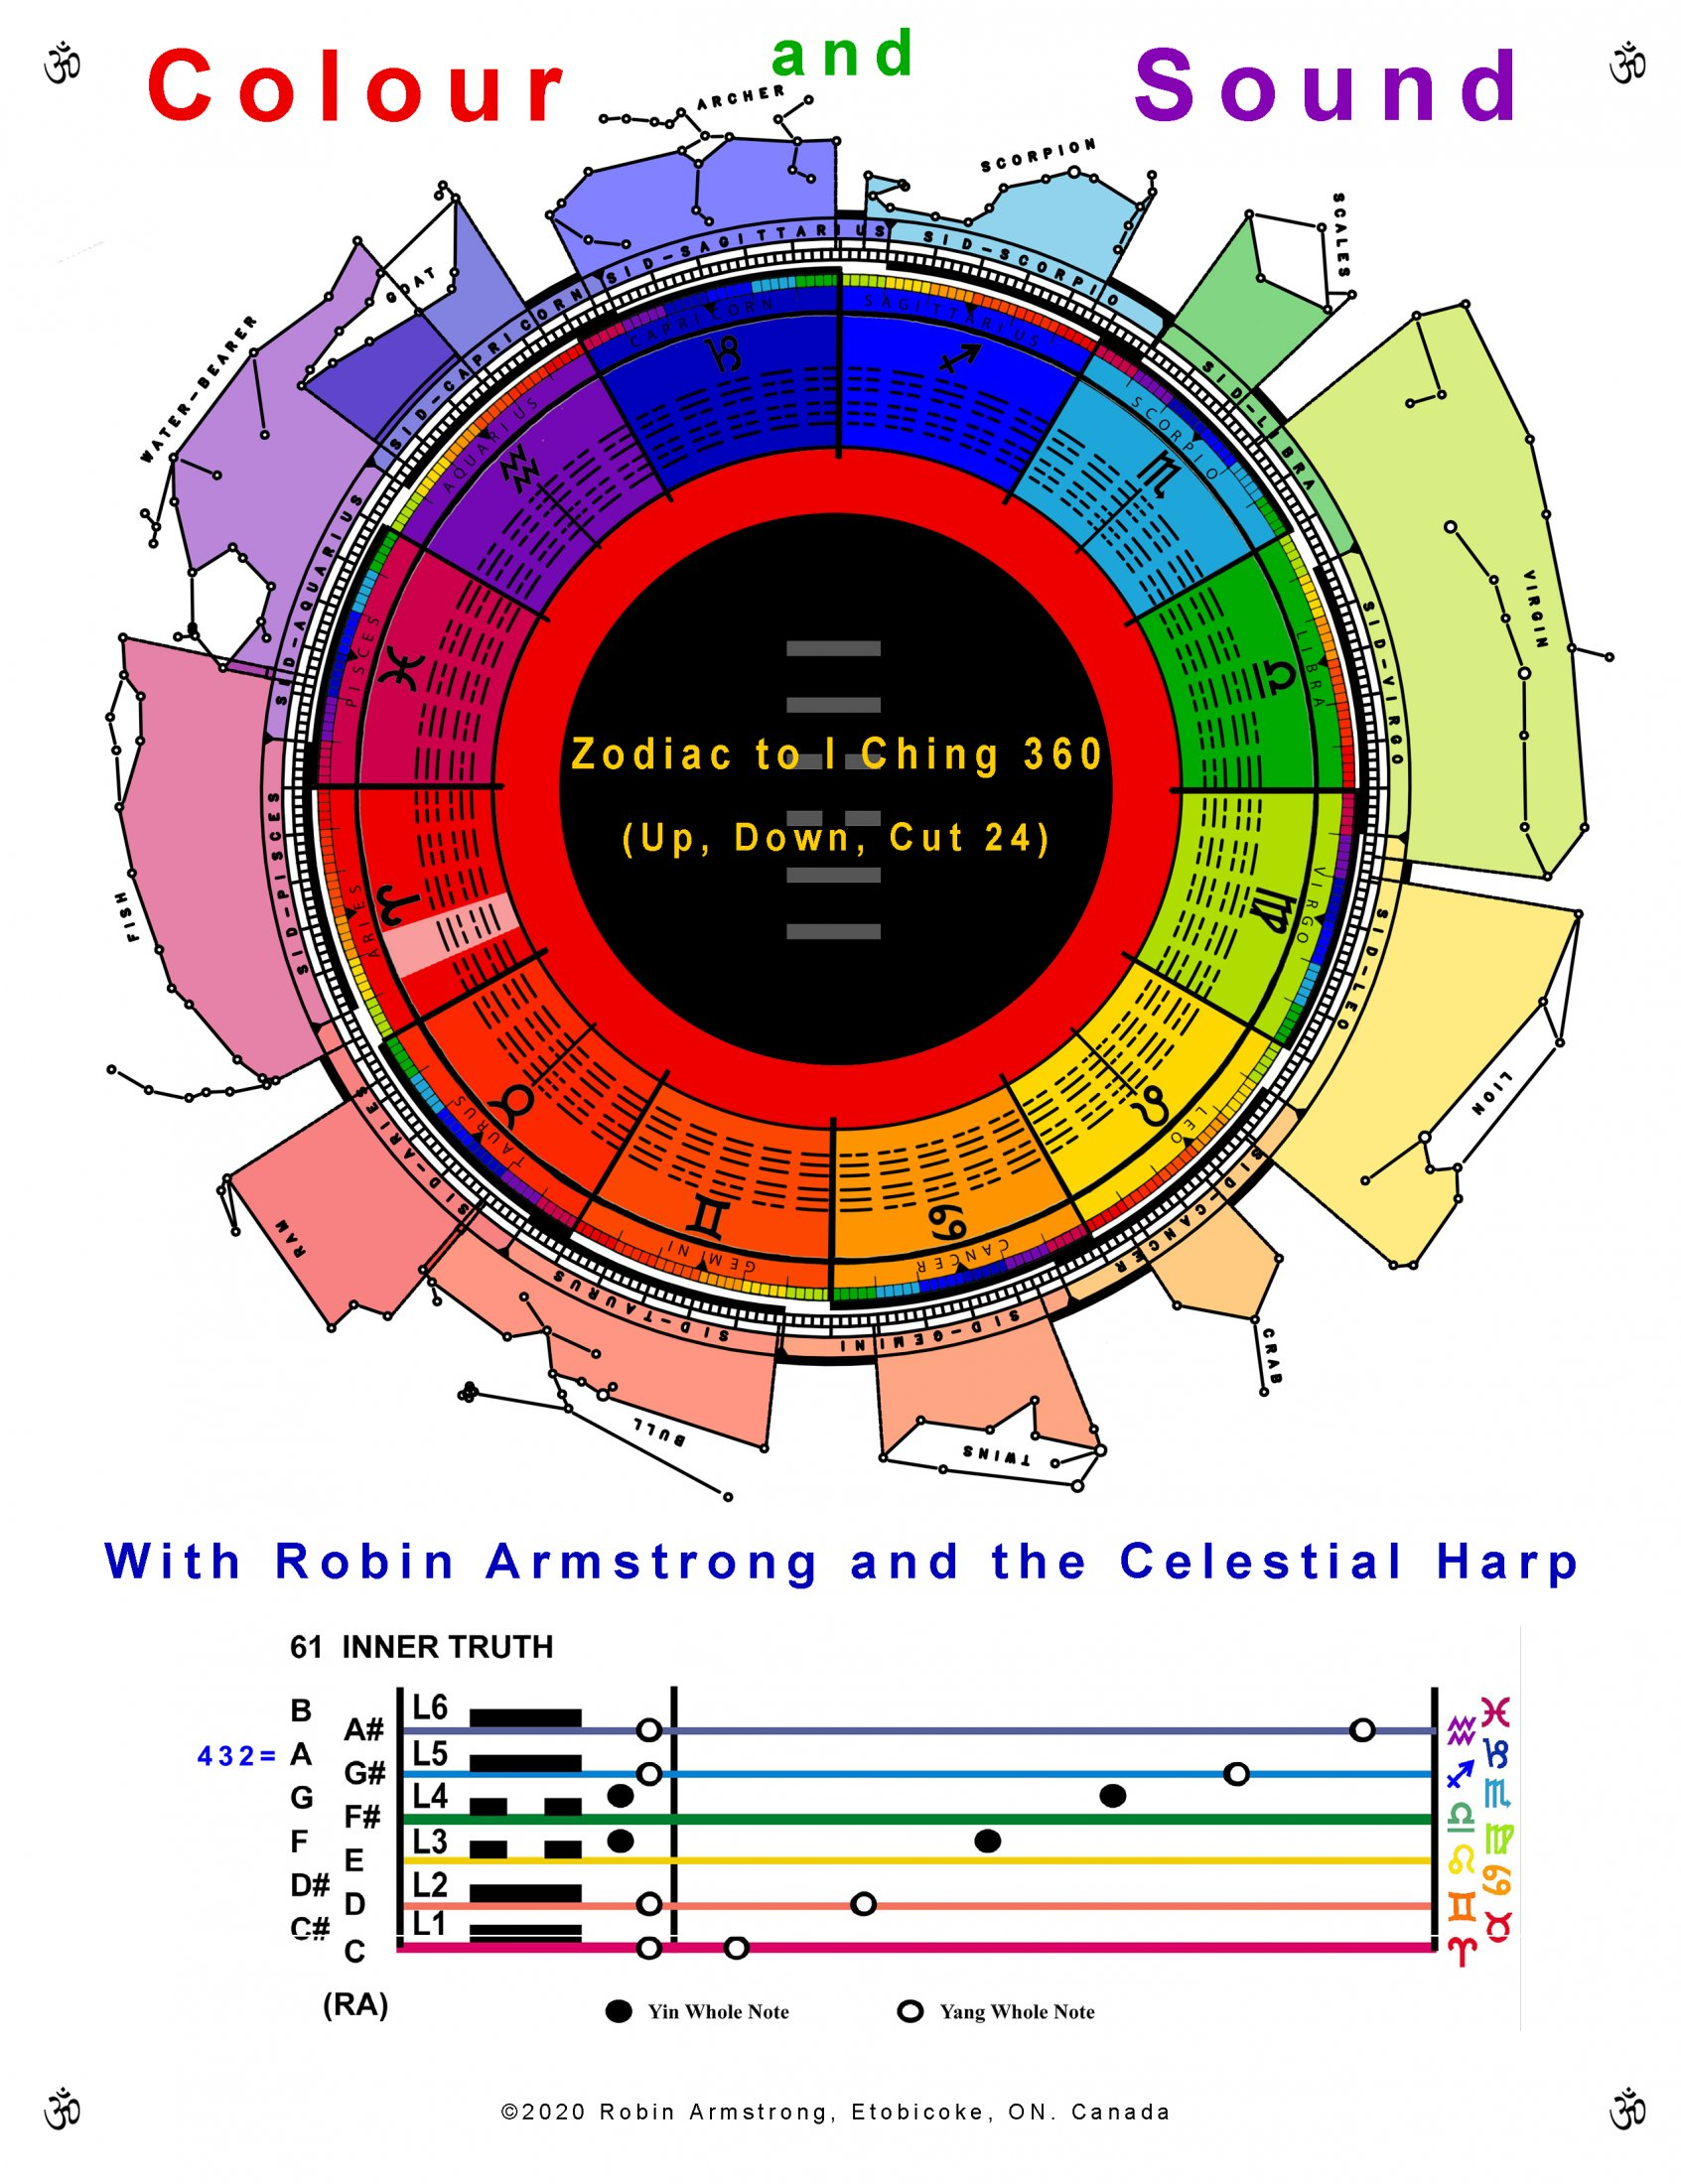 Title-Colour+Sound-Zodiac-to-I-Ching-360-up-down+cut-24